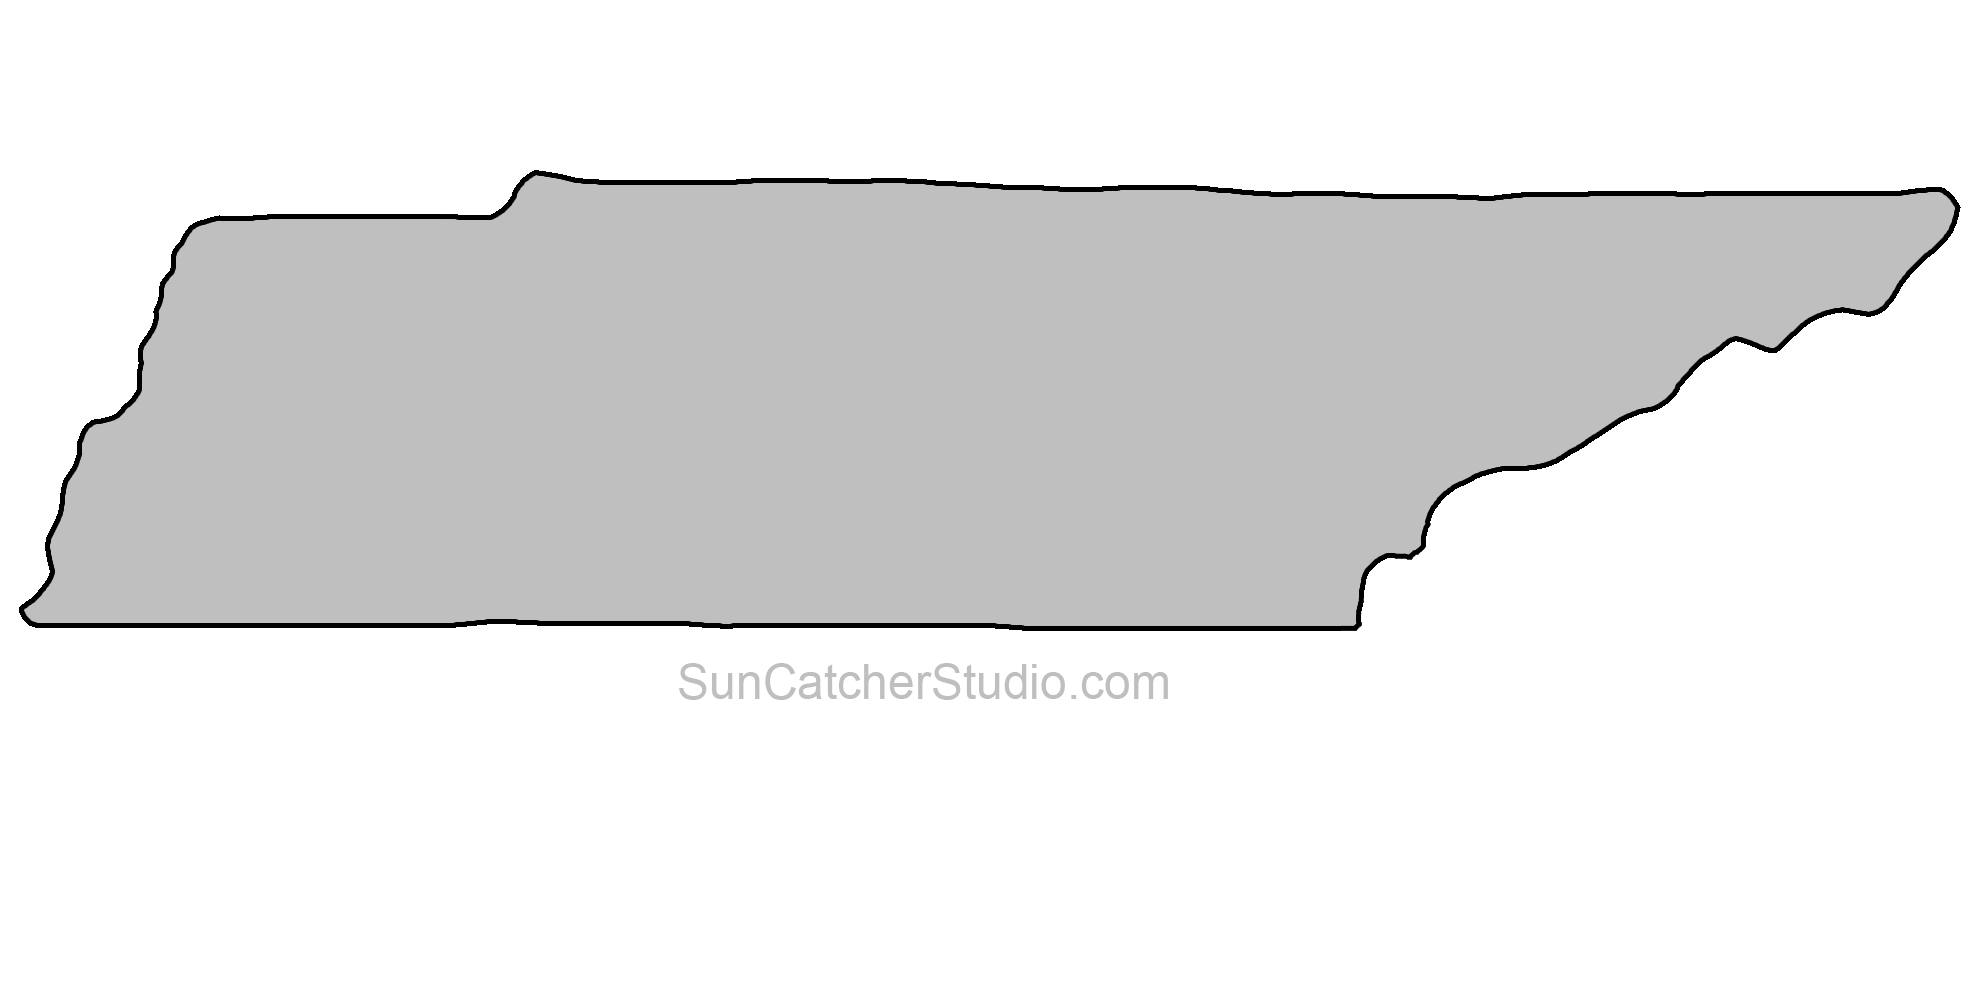 Tennessee Map Outline Png Shape State Stencil Clip Art Scroll Saw Pattern Printable Downloadable Free Template Tennessee Map Tennessee Outline Map Outline